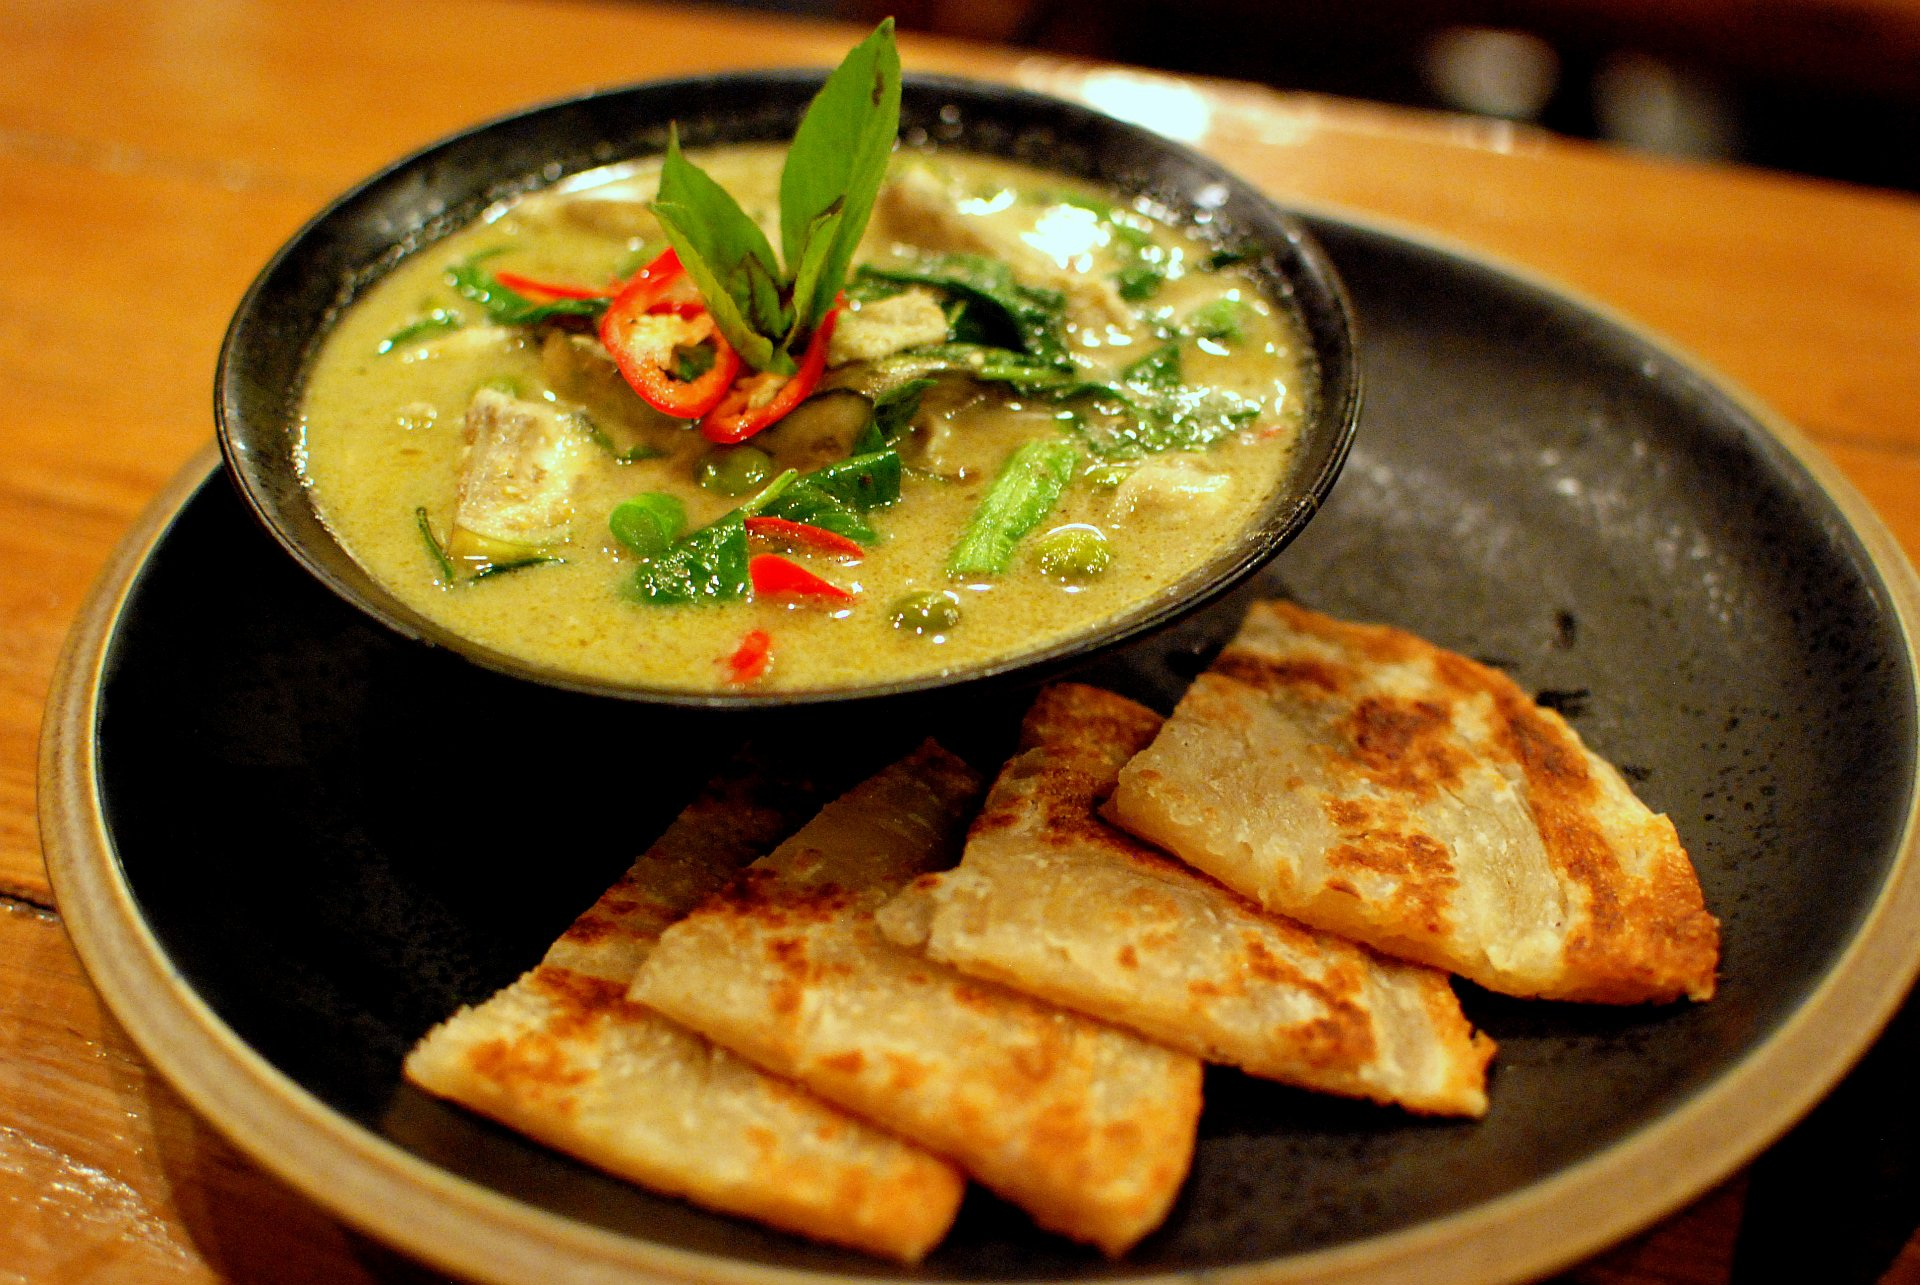 https://upload.wikimedia.org/wikipedia/commons/e/e5/Thai_green_chicken_curry_and_roti.jpg